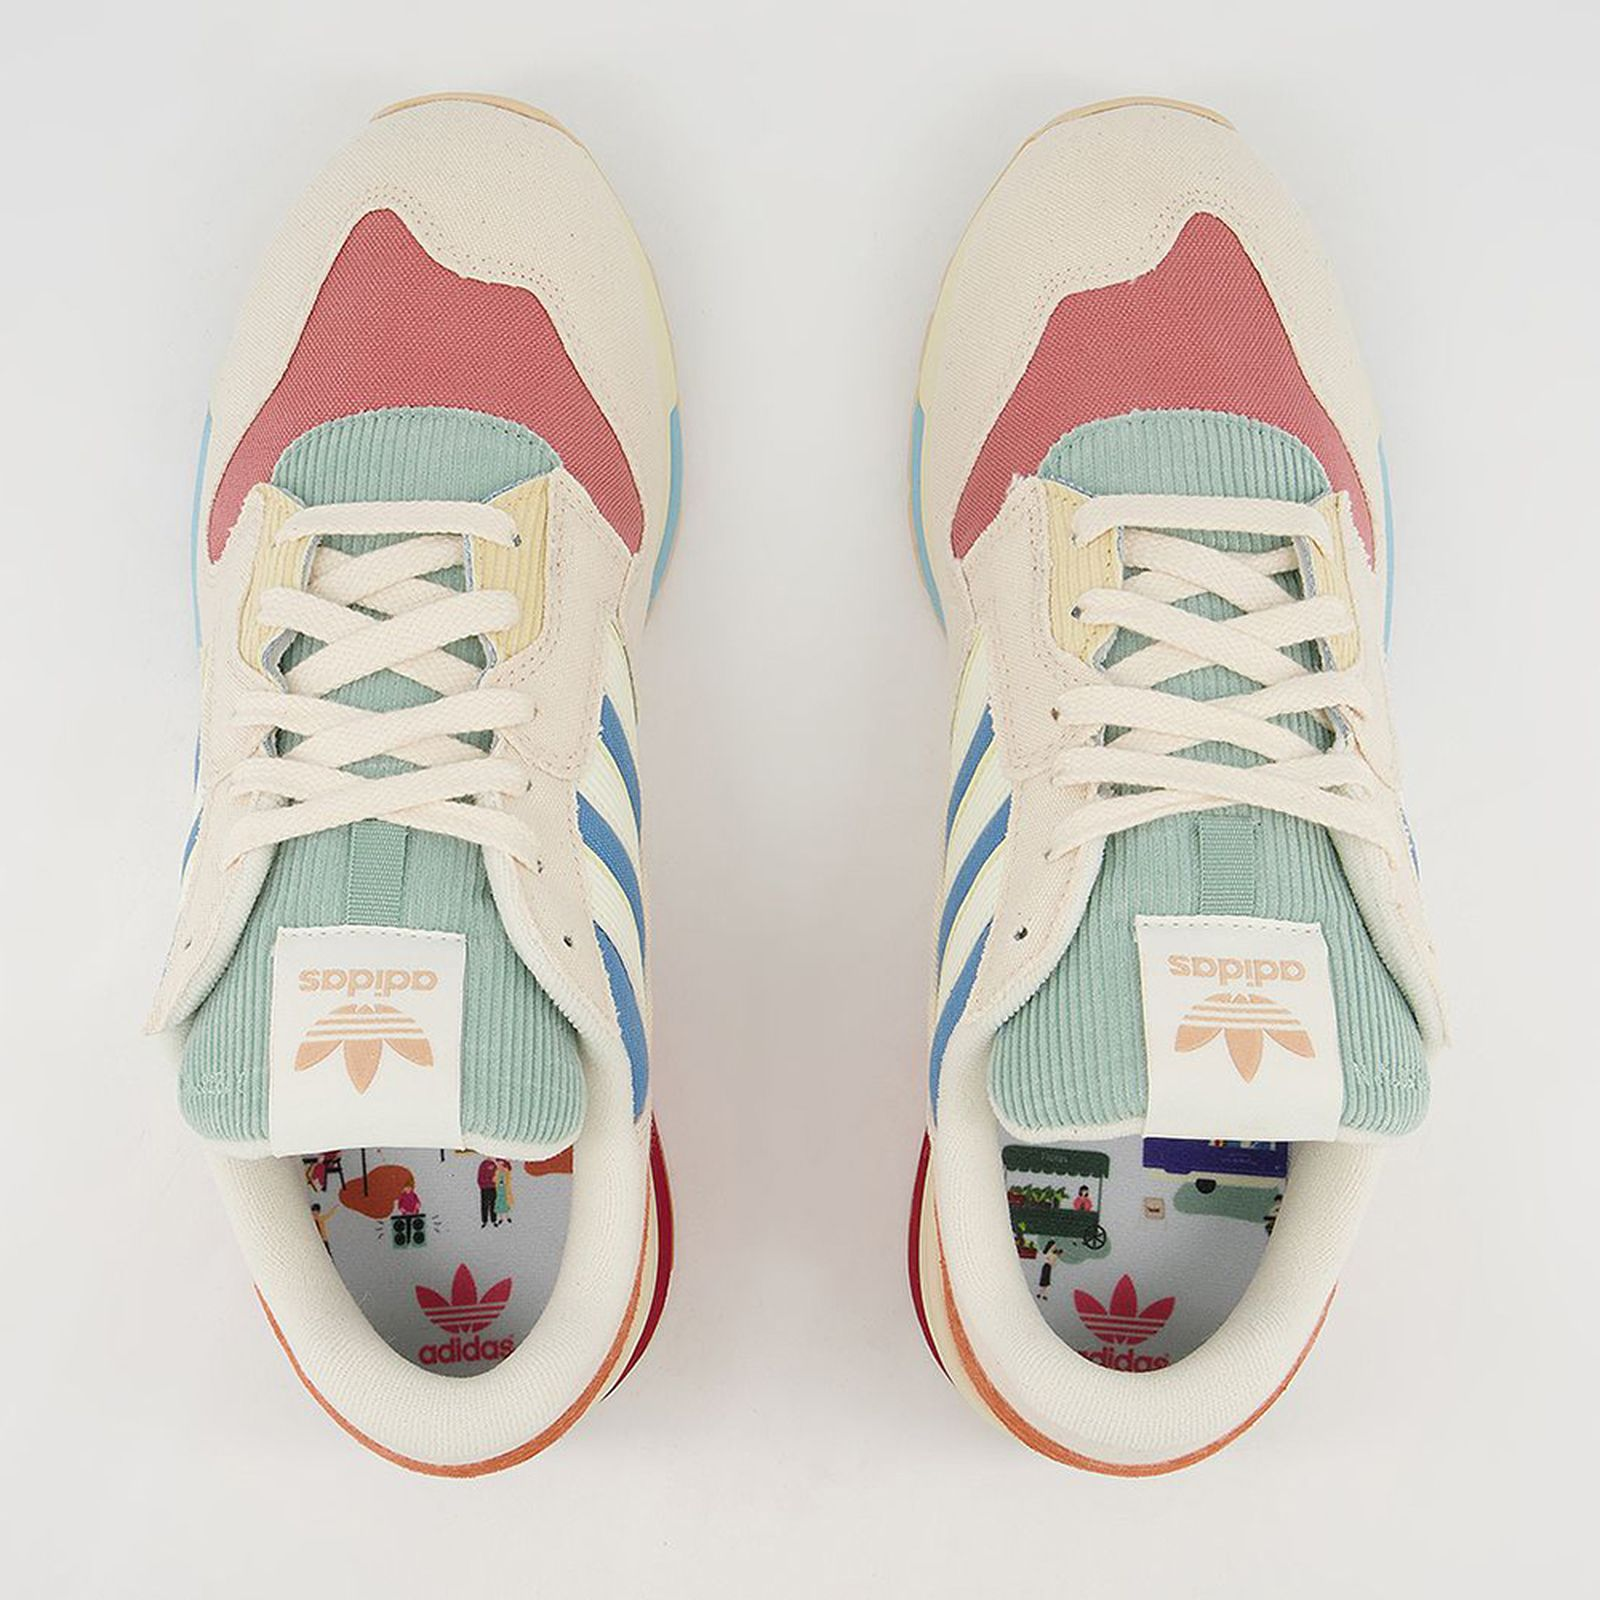 offspring-adidas-zx-420-la-release-date-price-11